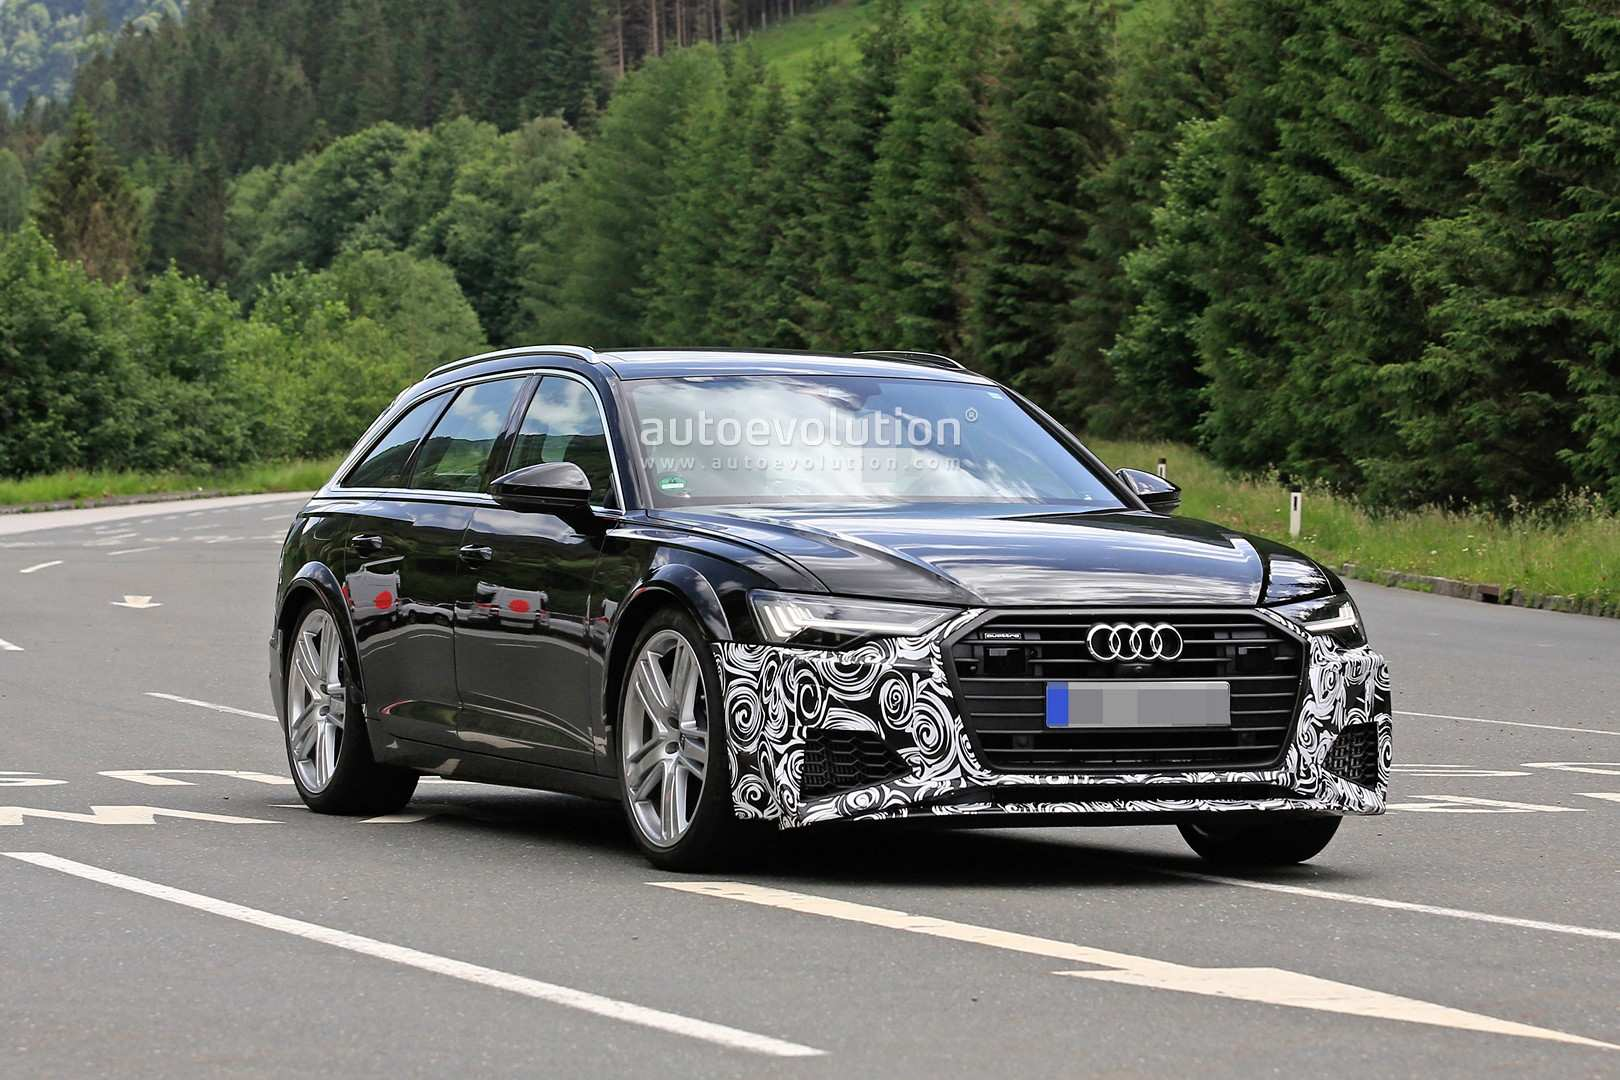 49 Great 2020 Audi Rs6 Wagon Price by 2020 Audi Rs6 Wagon